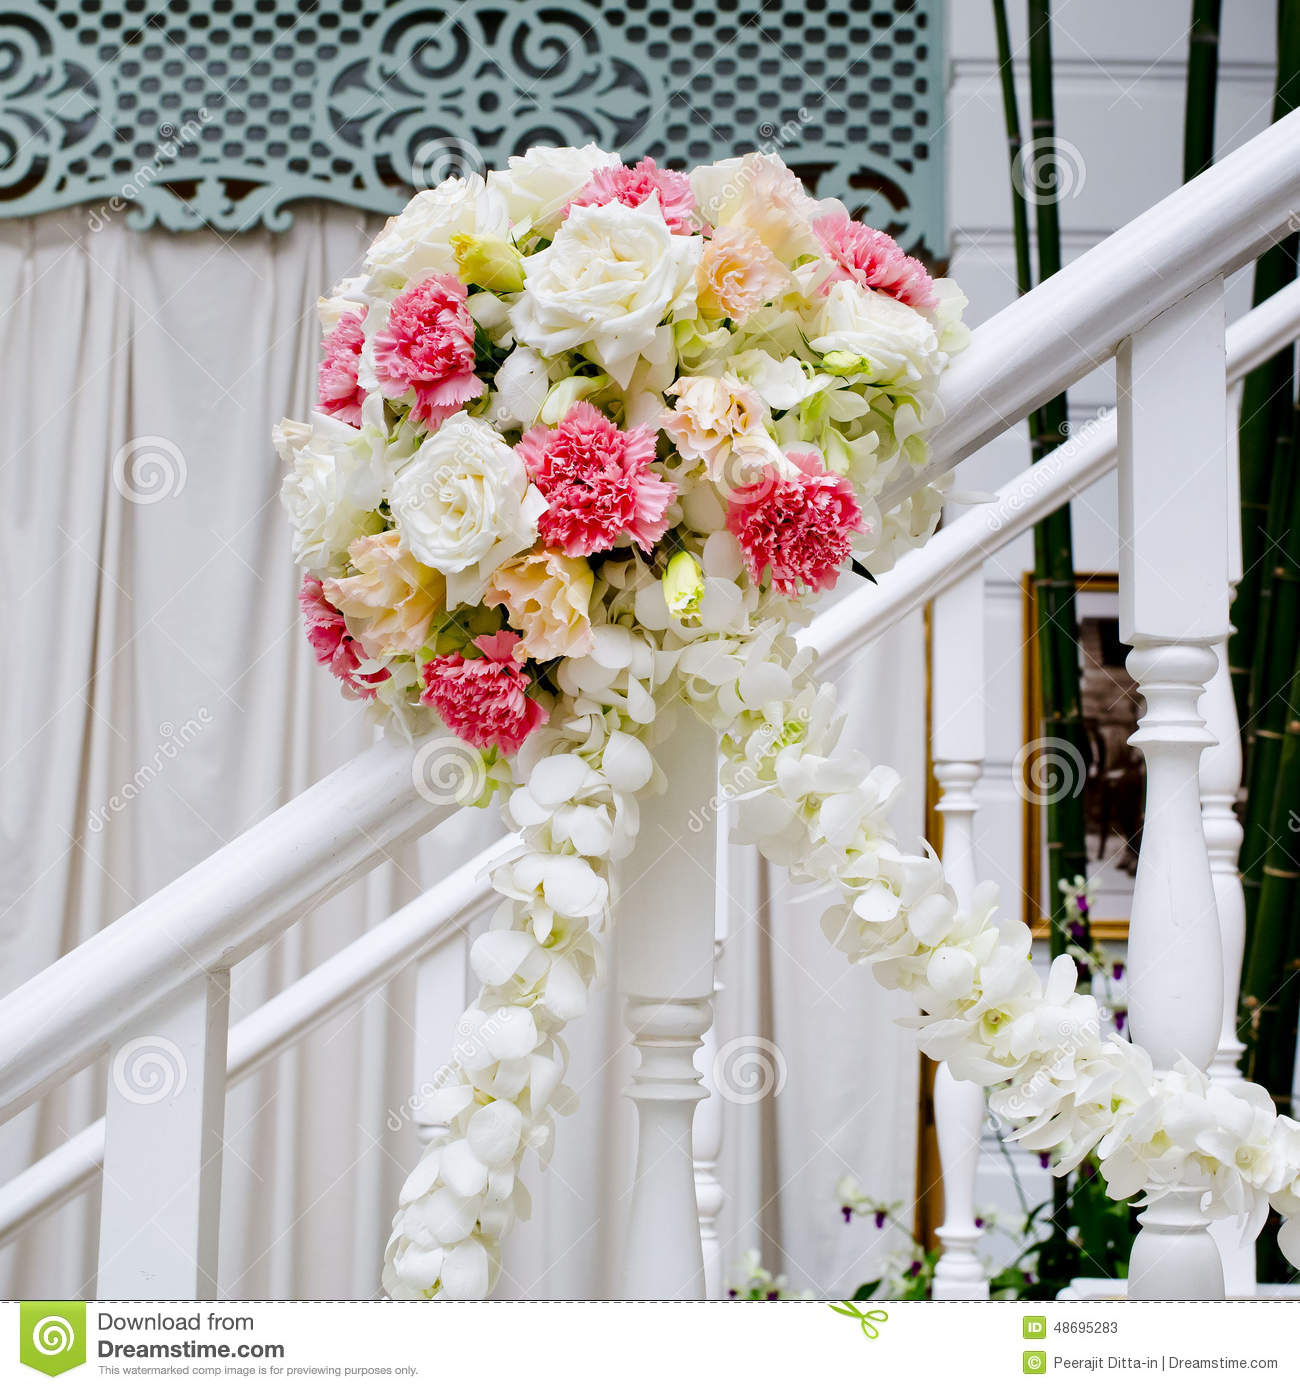 Wedding Flower Decoration Photos: Beautiful Wedding Flower Decoration At Stairs Stock Image